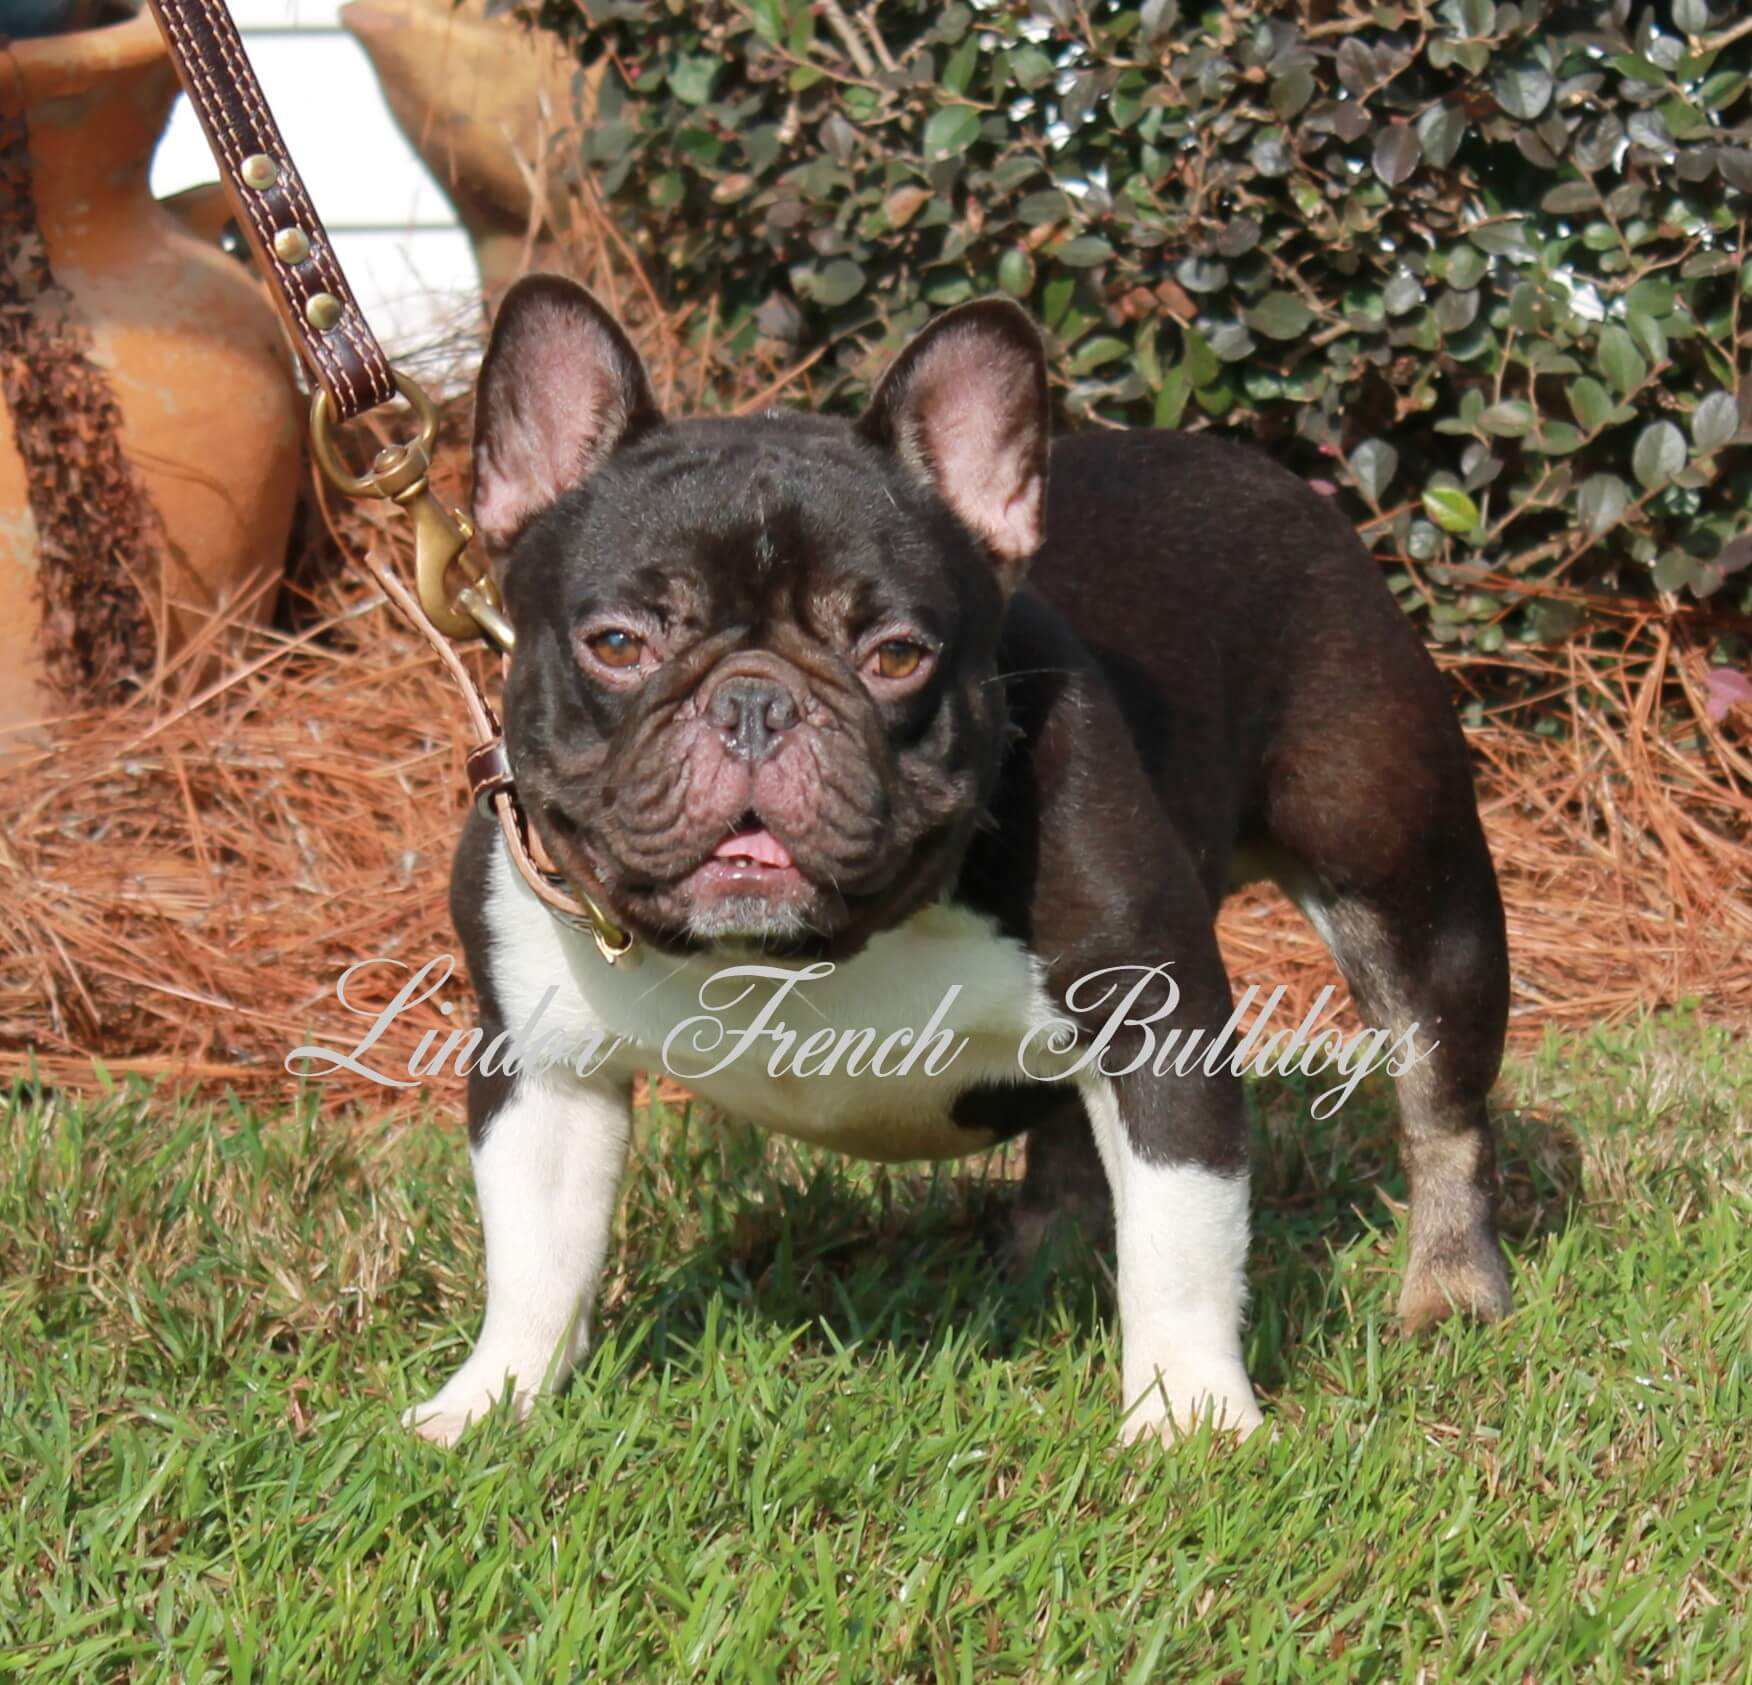 A chocolate and tan adult male French bulldog used for breeding by Lindor French Bulldogs